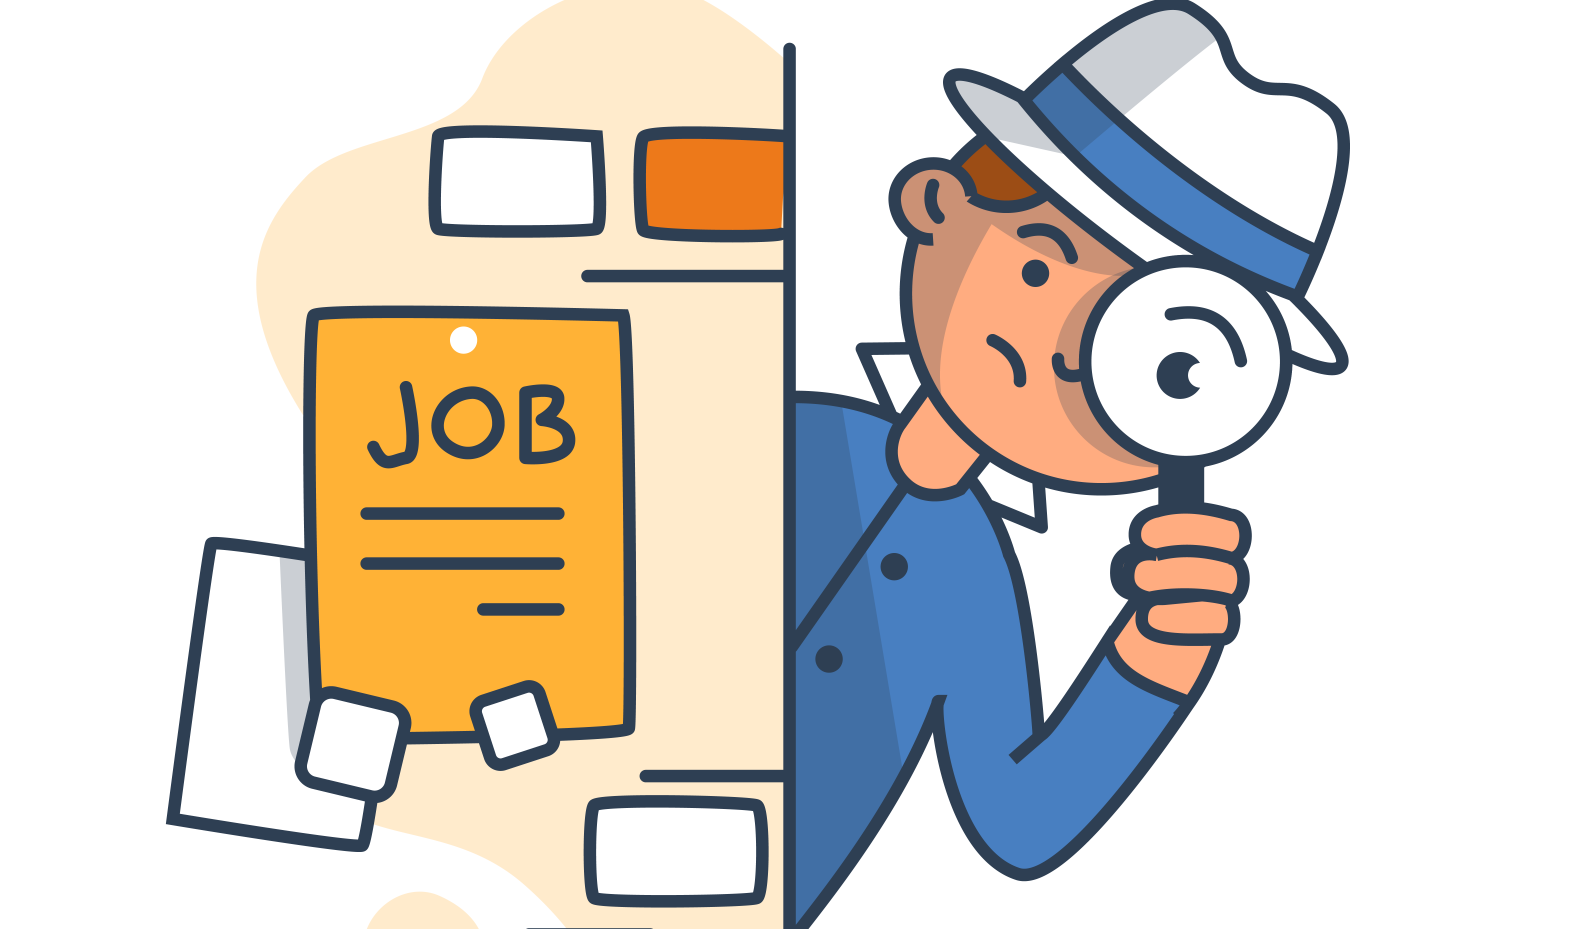 Report clipart job analysis, Report job analysis Transparent.